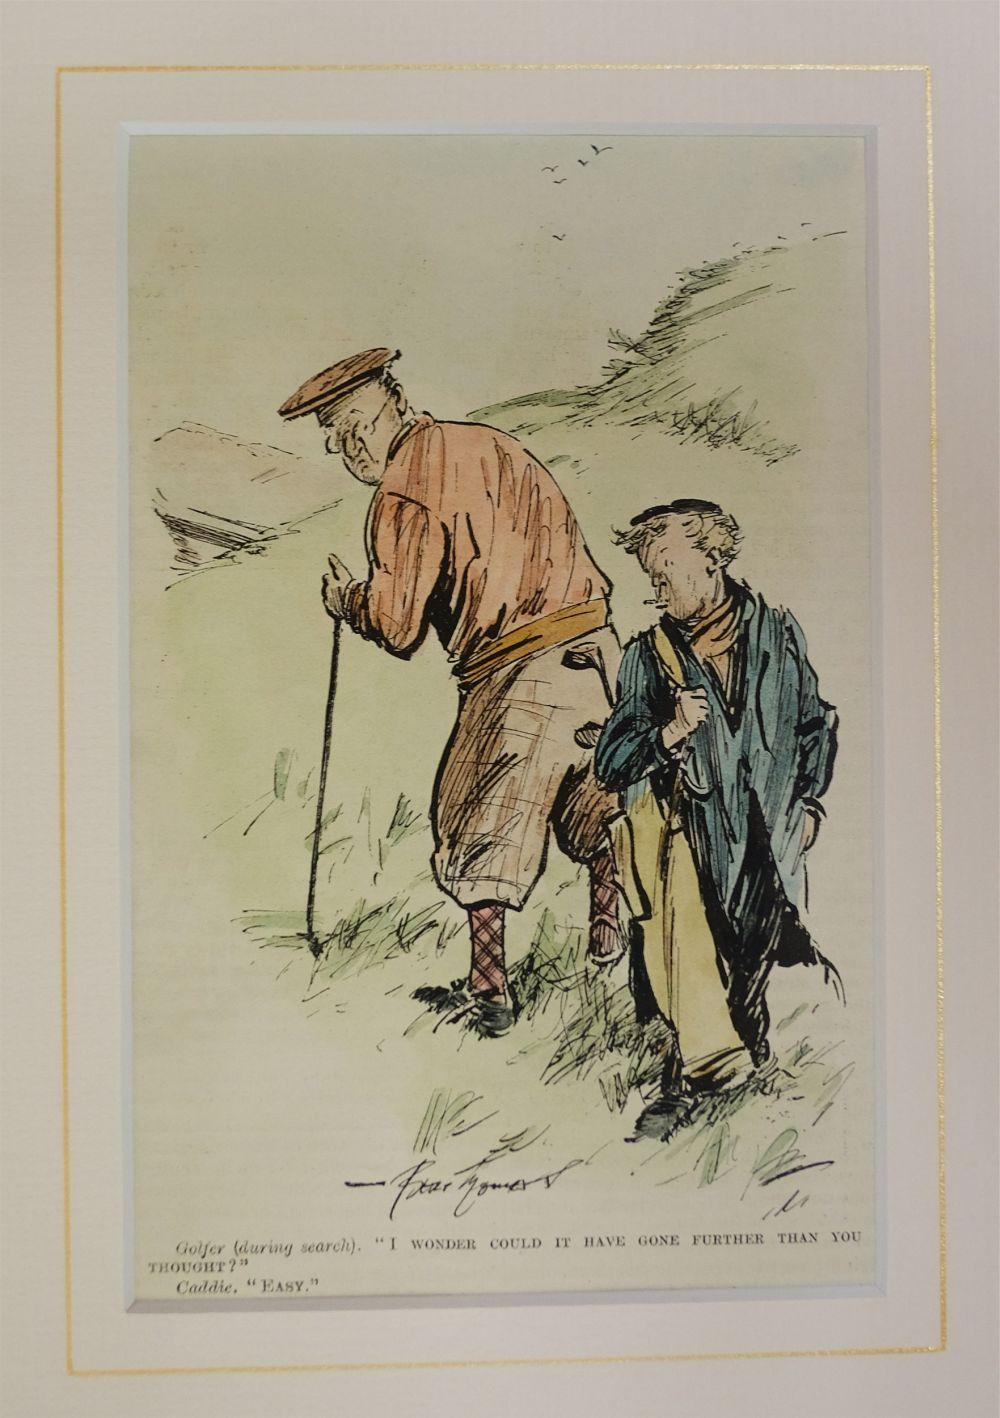 * Punch cartoons. A large collection of approximately 1250 cartoons, mostly early 20th century